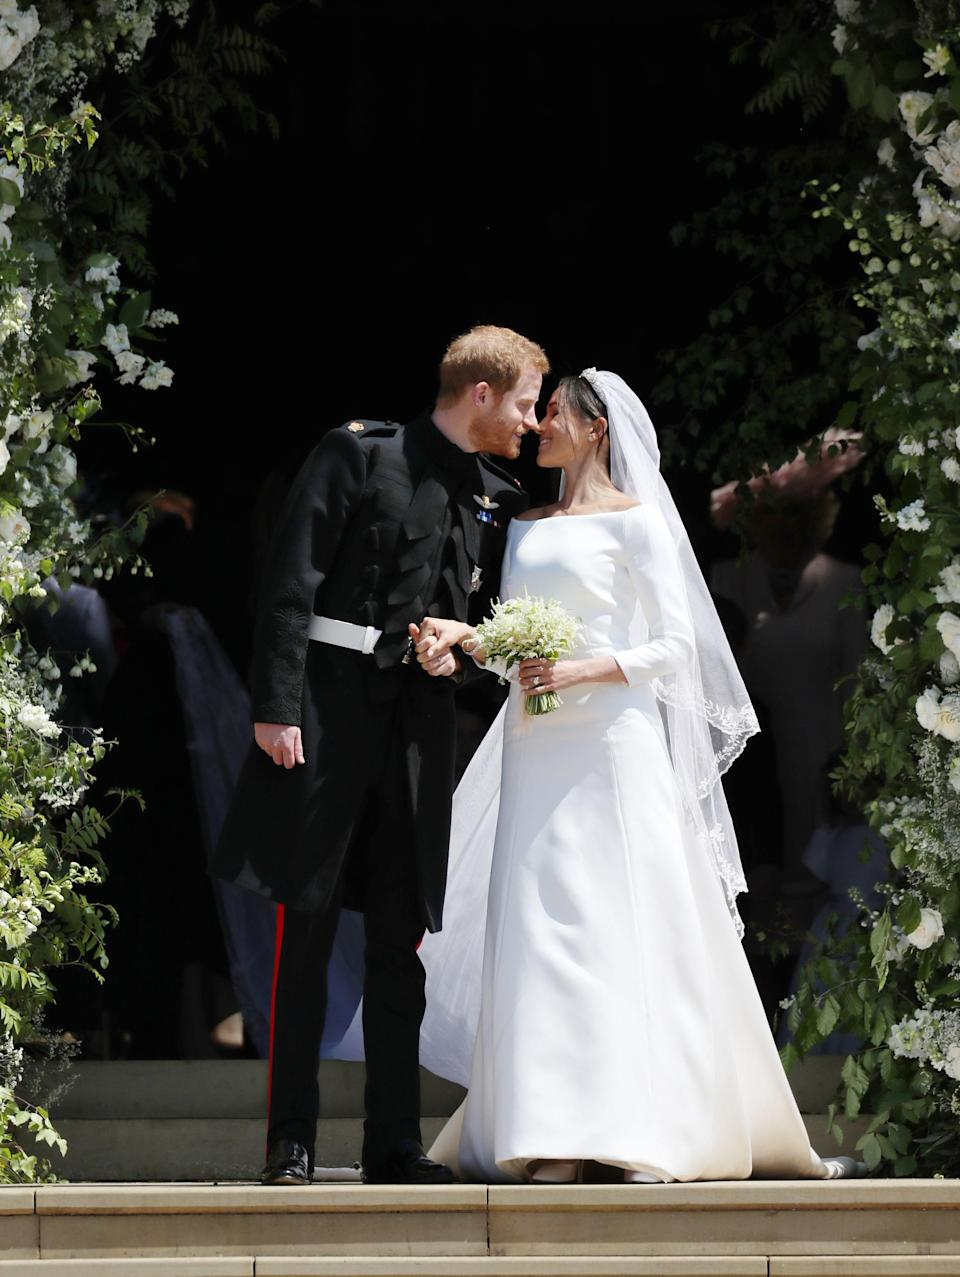 WINDSOR, UNITED KINGDOM - MAY 19:  Prince Harry and Meghan Markle kiss on the steps of St George's Chapel in Windsor Castle after their wedding in St George's Chapel at Windsor Castle on May 19, 2018 in Windsor, England. (Photo by Jane Barlow - WPA Pool/Getty Images)